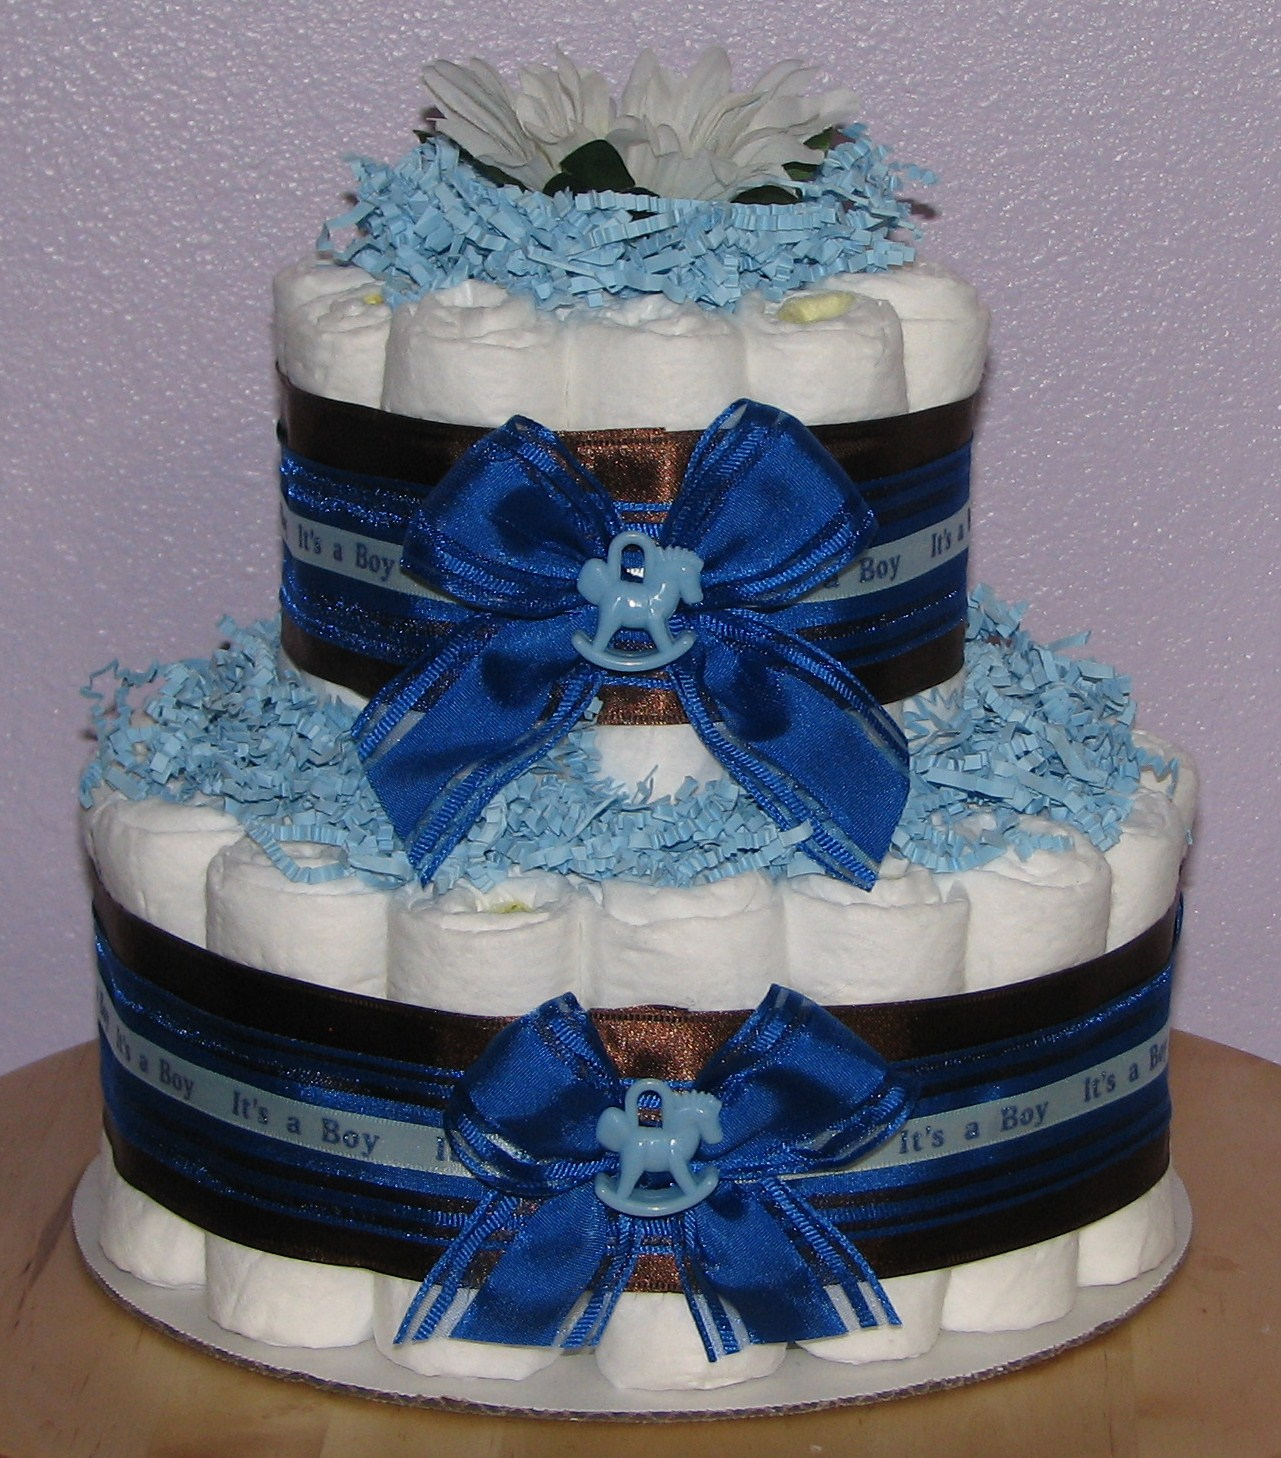 IMG_8014.JPG - Blue & Brown Diaper Cake